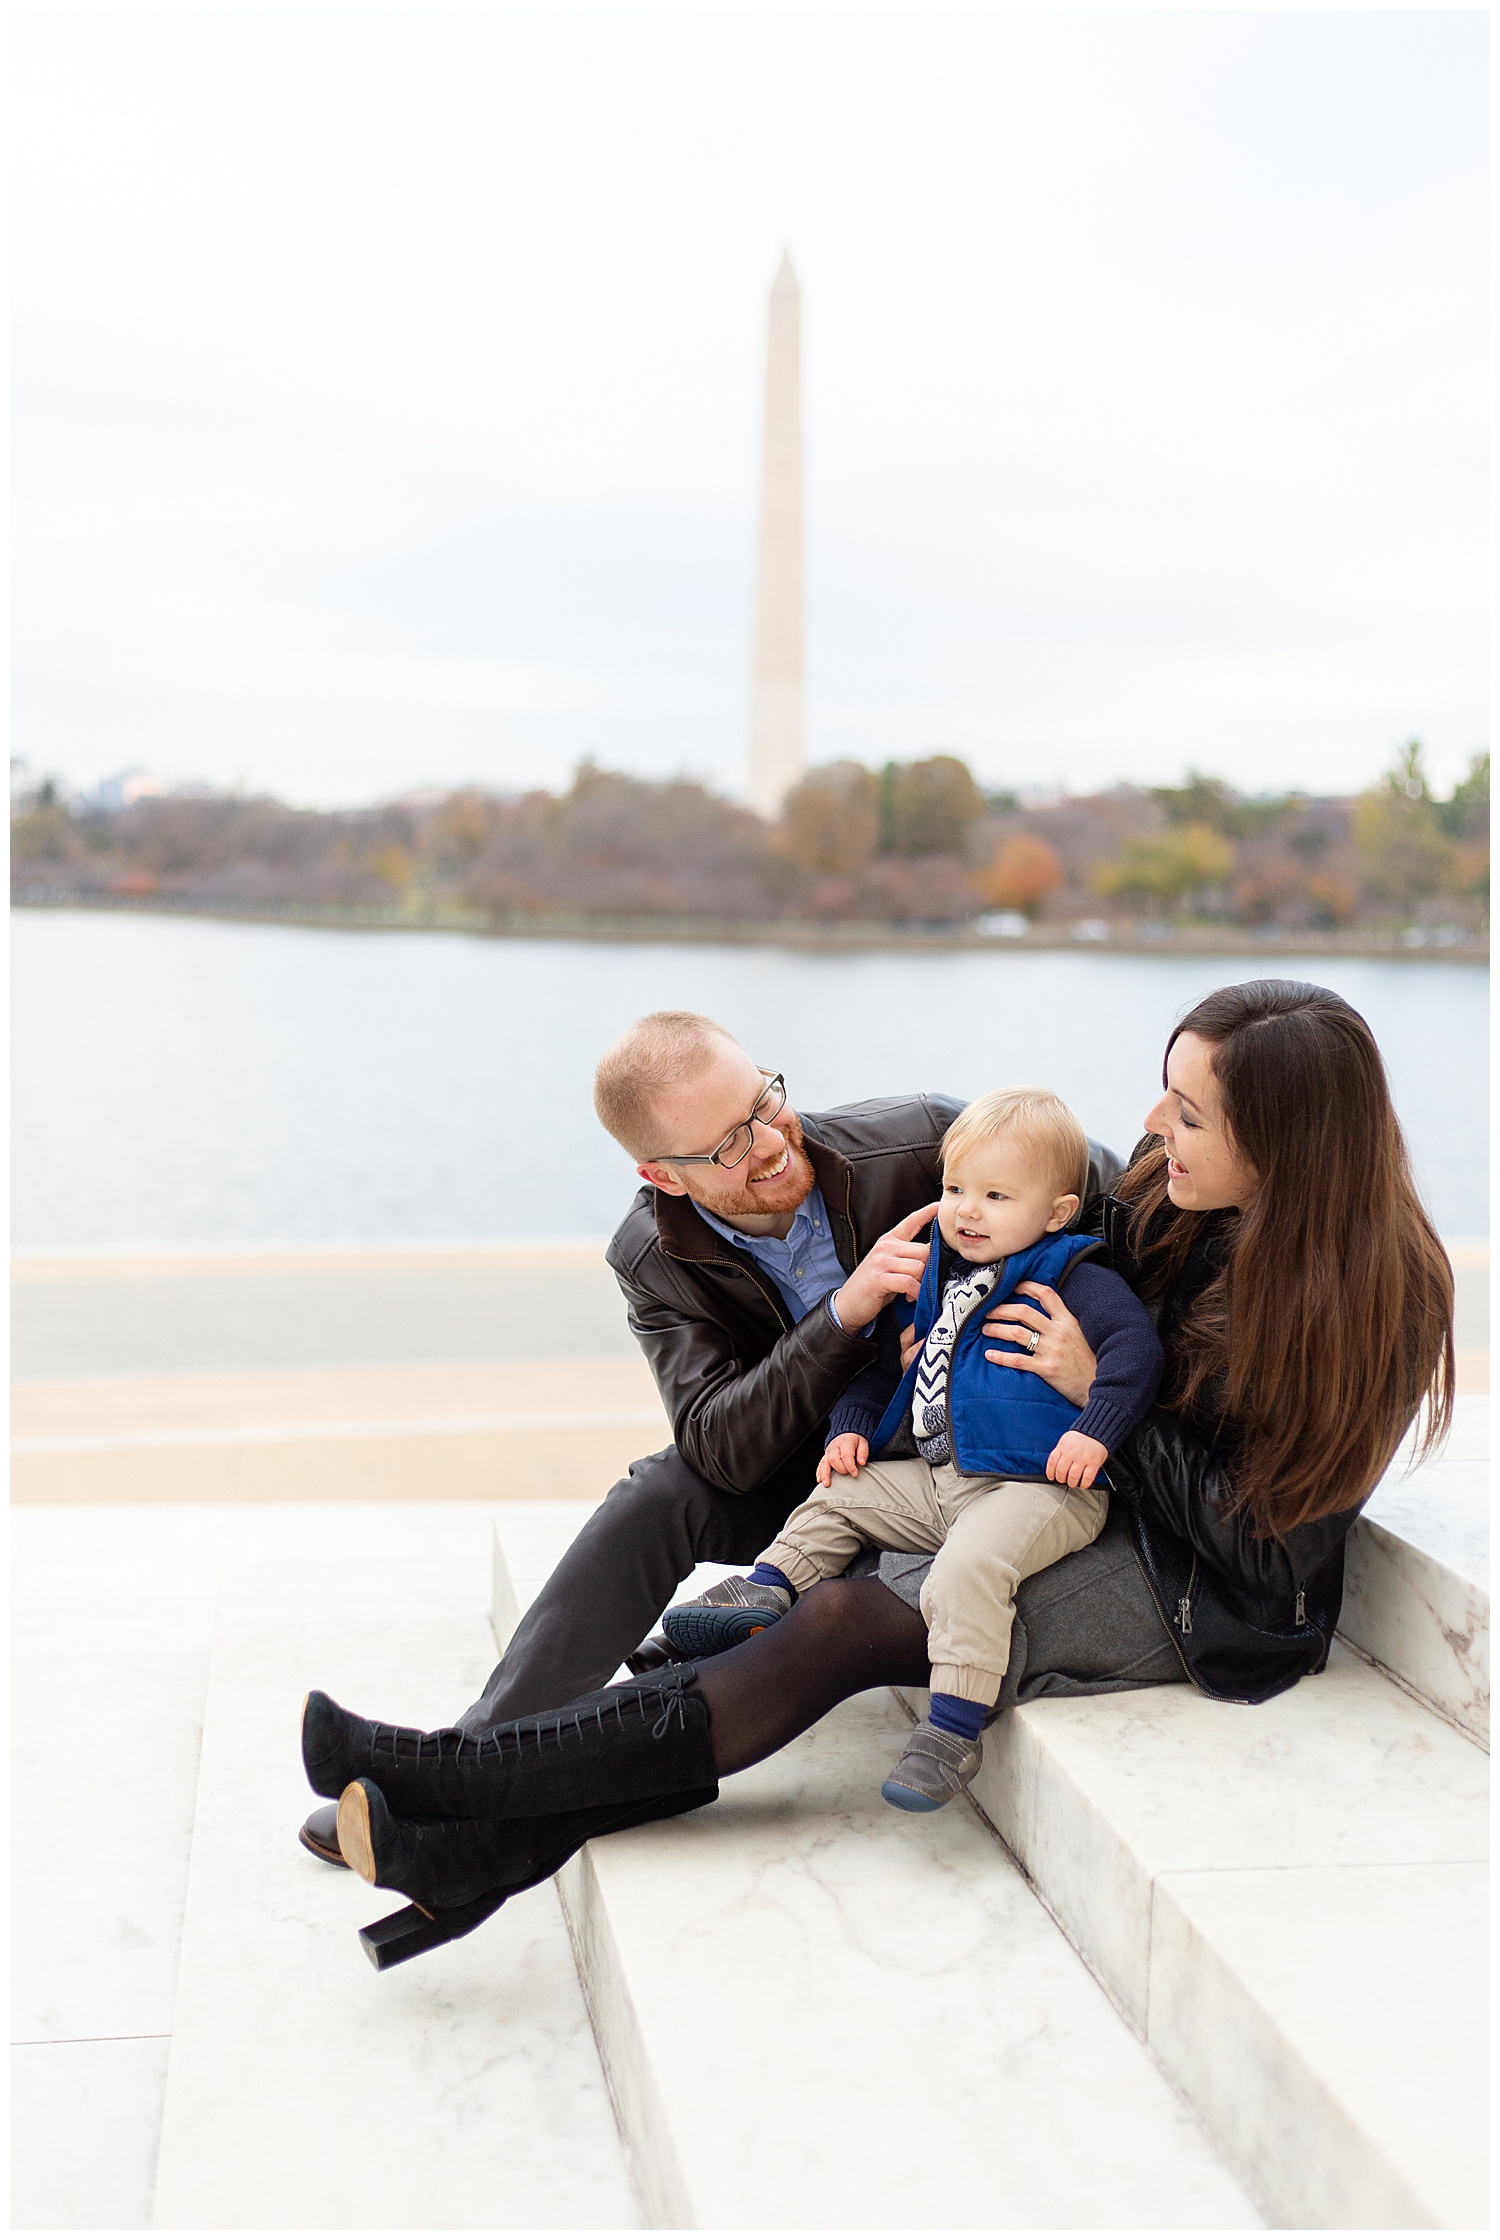 emily-belson-photography-jefferson-memorial-family-02.jpg